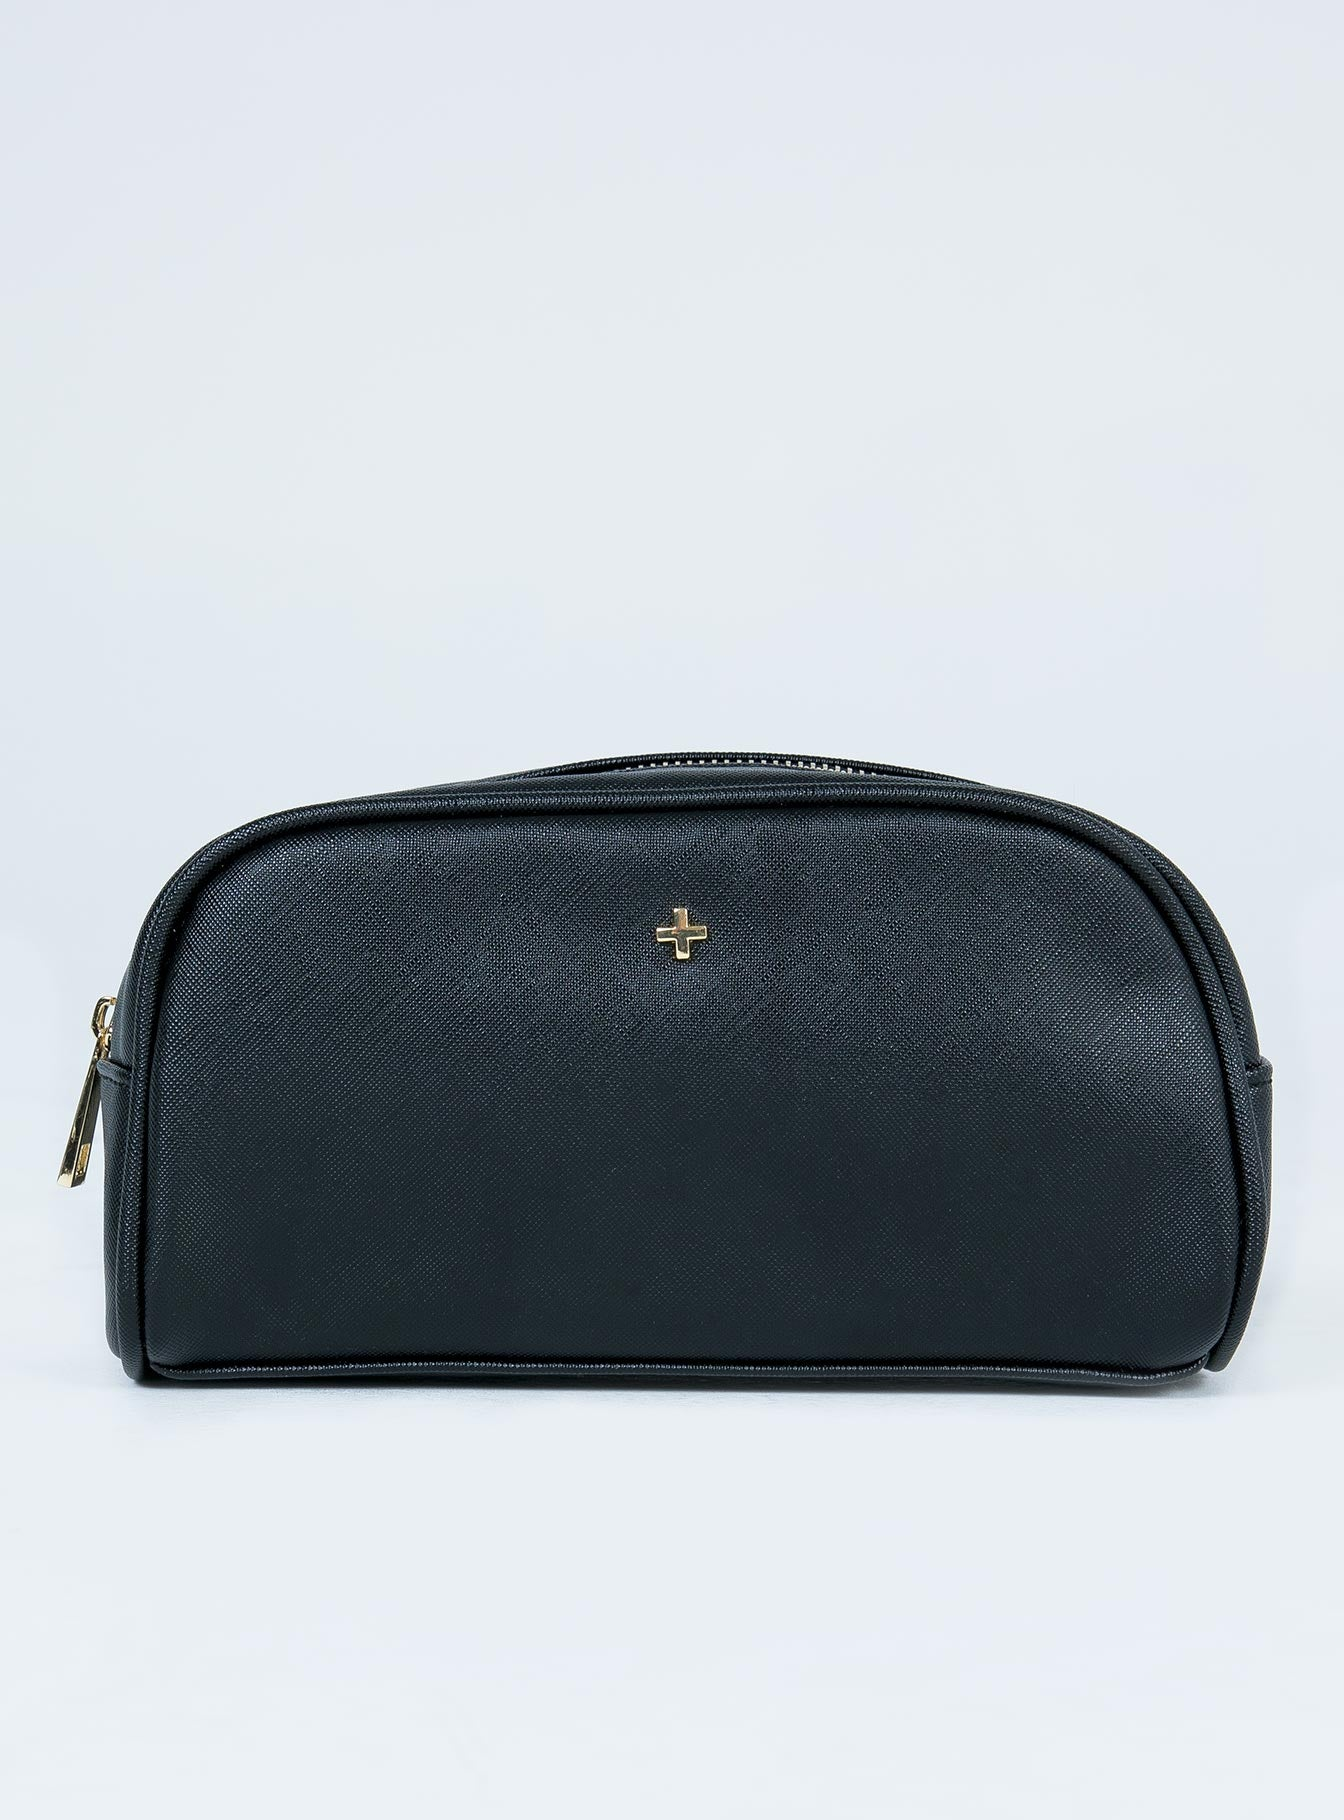 Peta & Jain Suki Black Saffiano Make-Up Bag